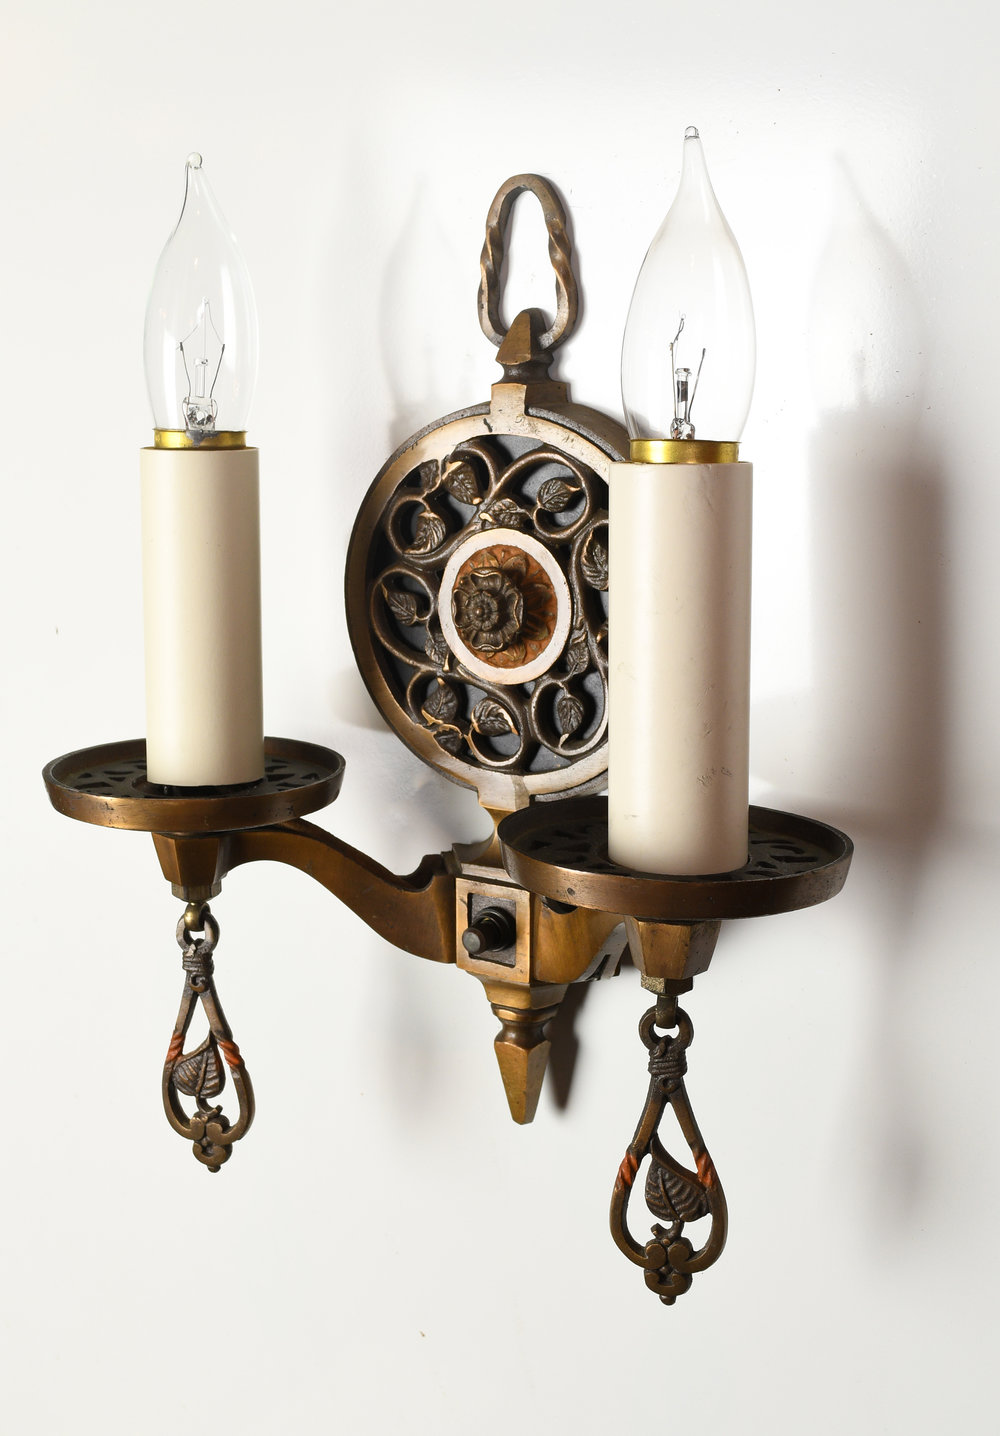 47756-brass-2-candle-polychrome-sconces-with-leaves-14.jpg